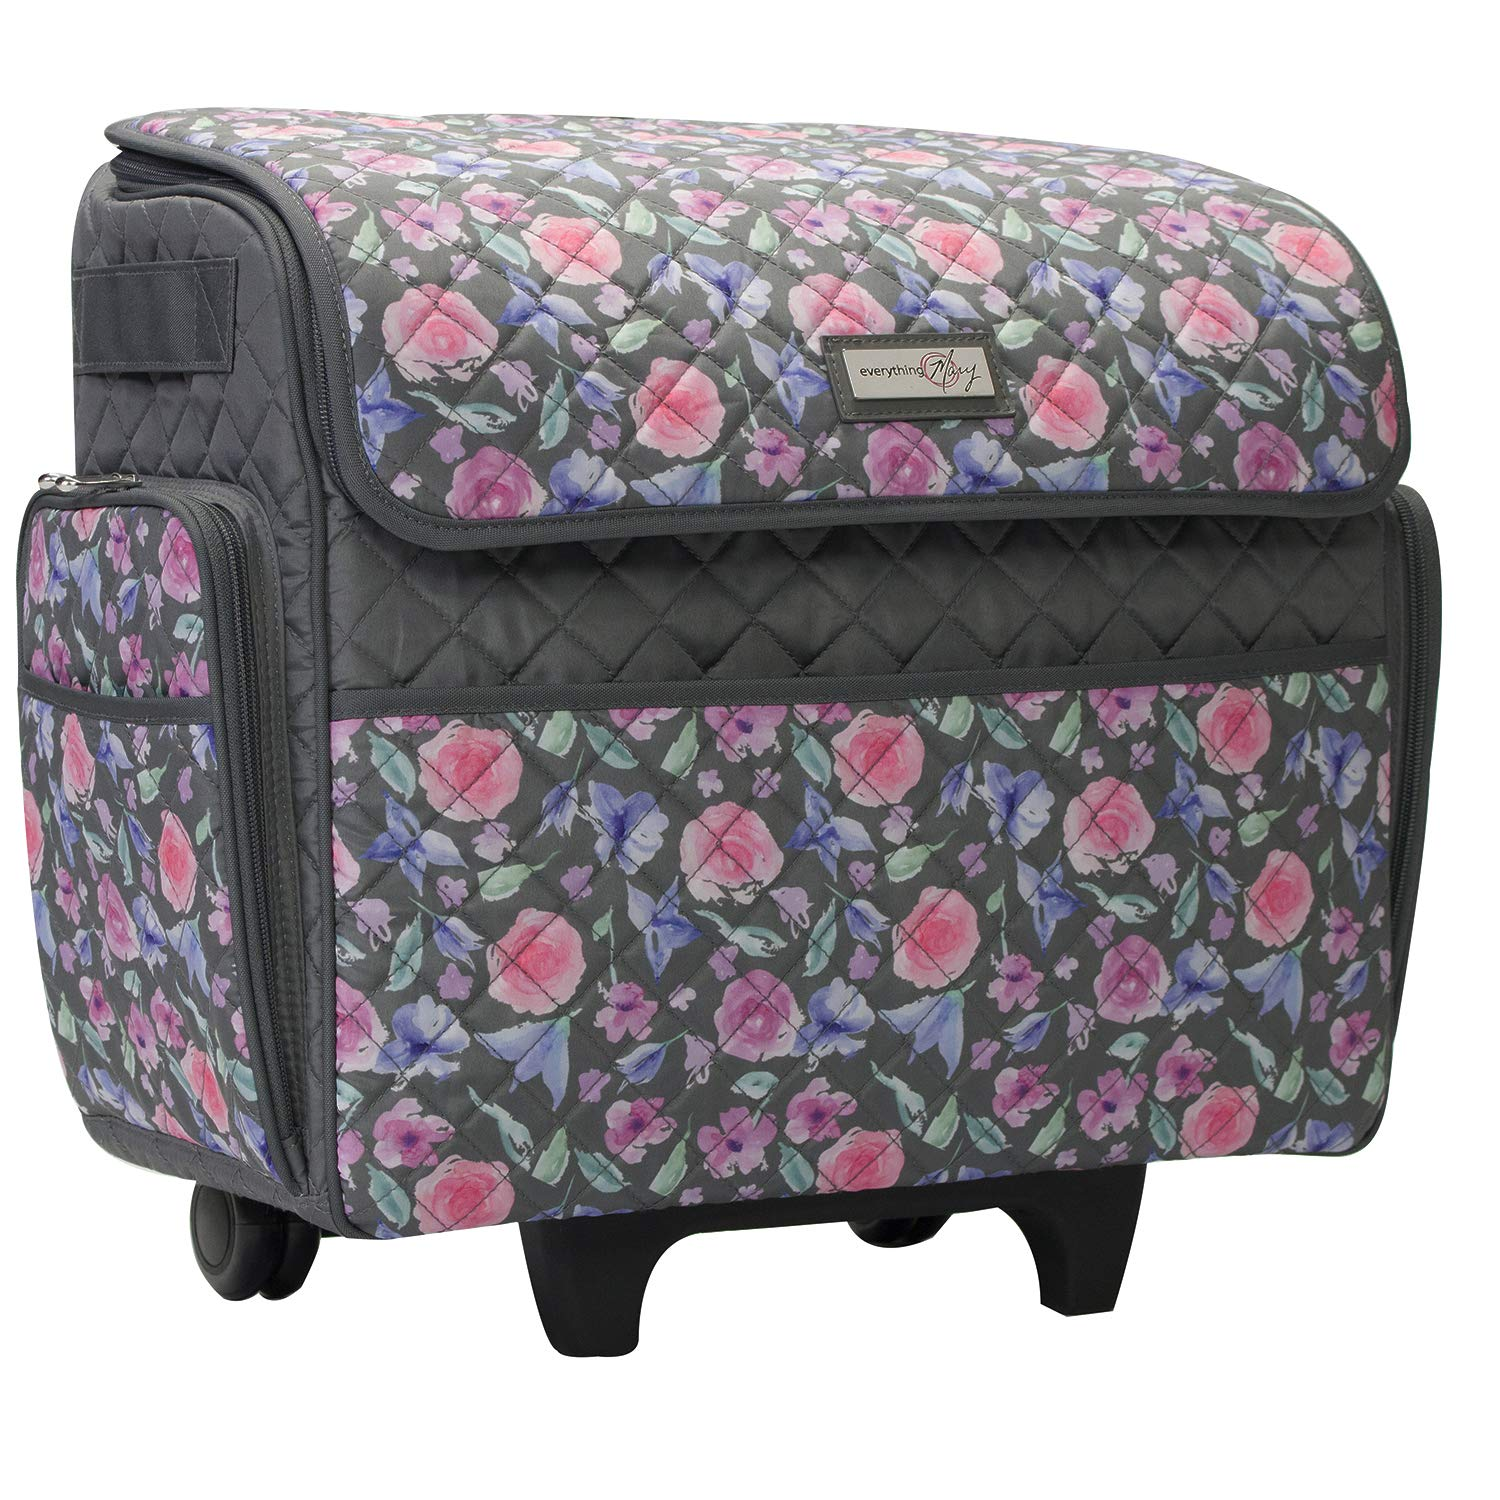 Everything Mary Deluxe Quilted Pink and Grey Floral Rolling Sewing Machine Tote - Sewing Machine Case Fits Most Standard Brother & Singer Sewing Machines, Sewing Bag with Wheels & Handle by Everything Mary